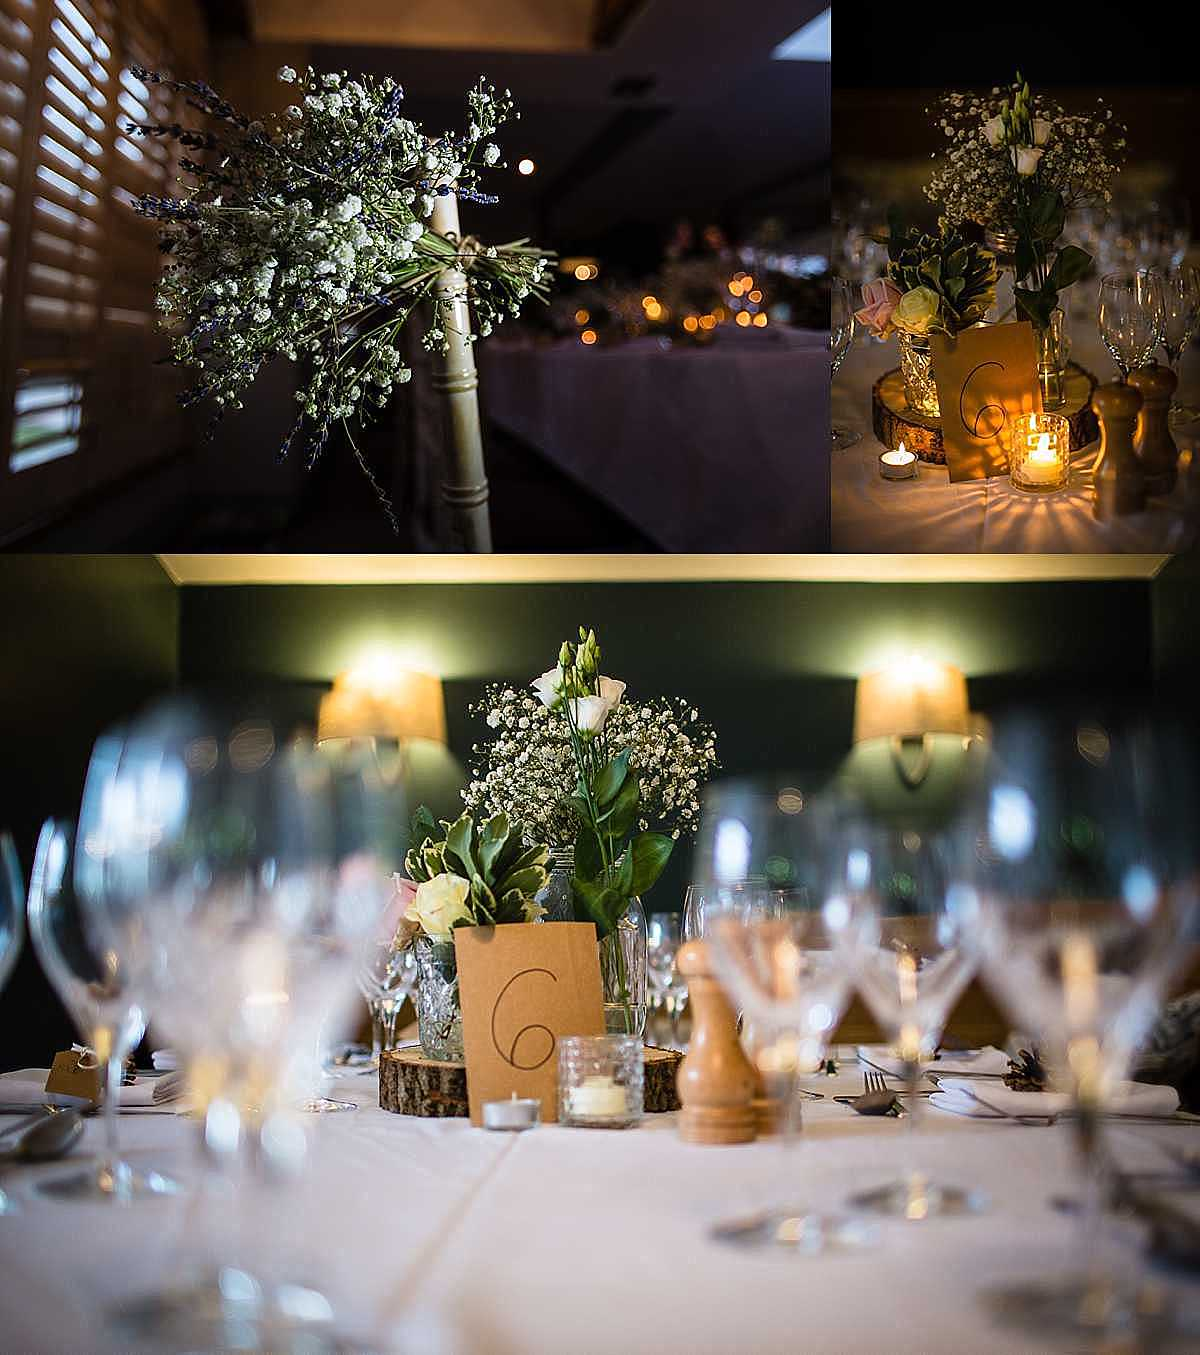 table details of delicate flowers in jam jars and wooden logs